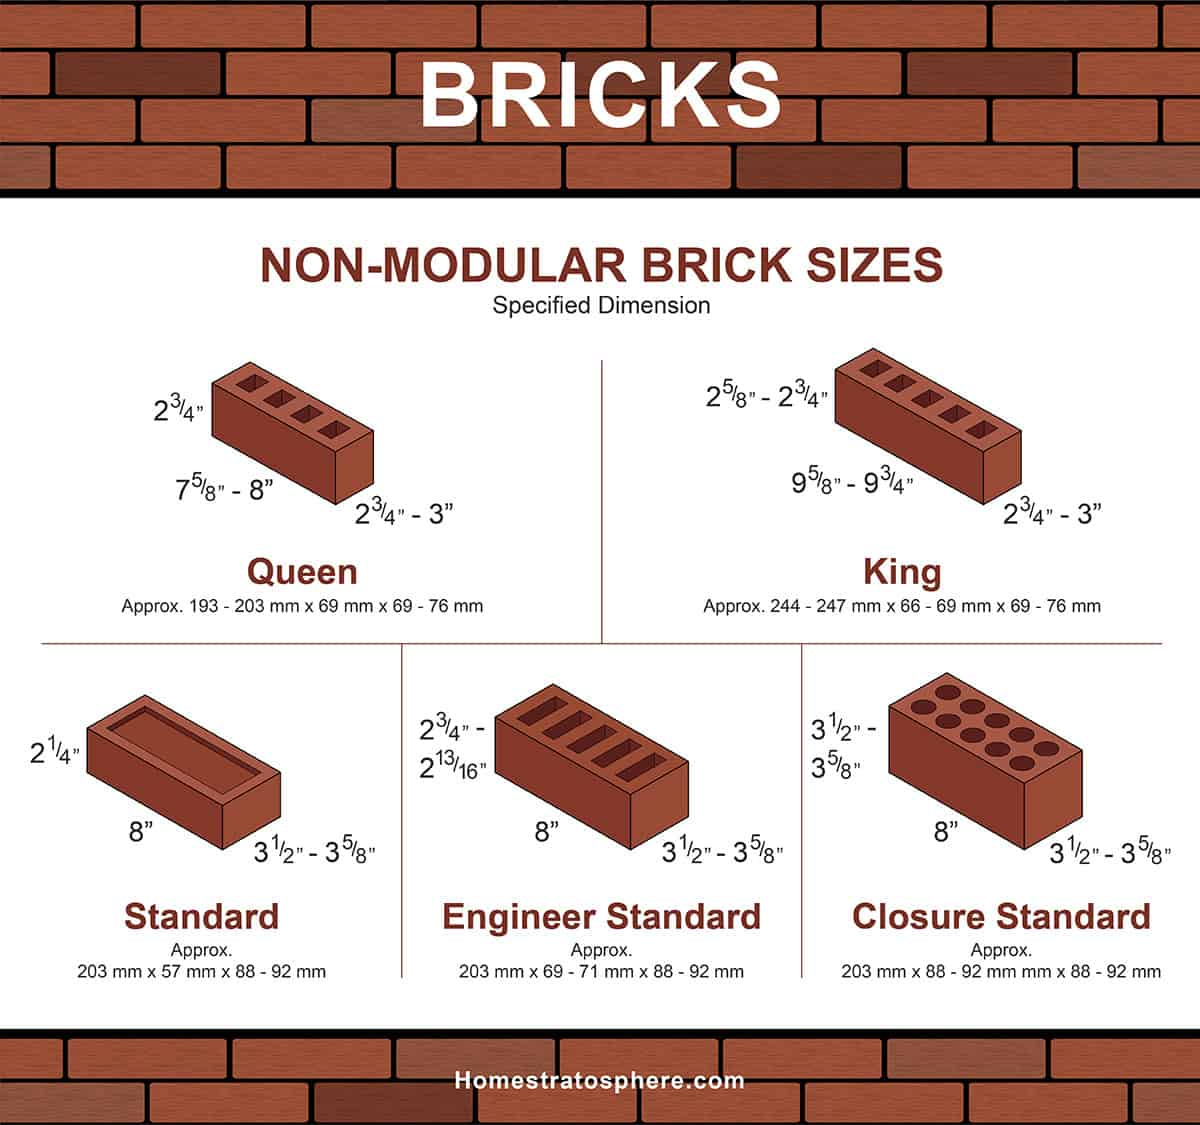 Non-modular brick sizes and types